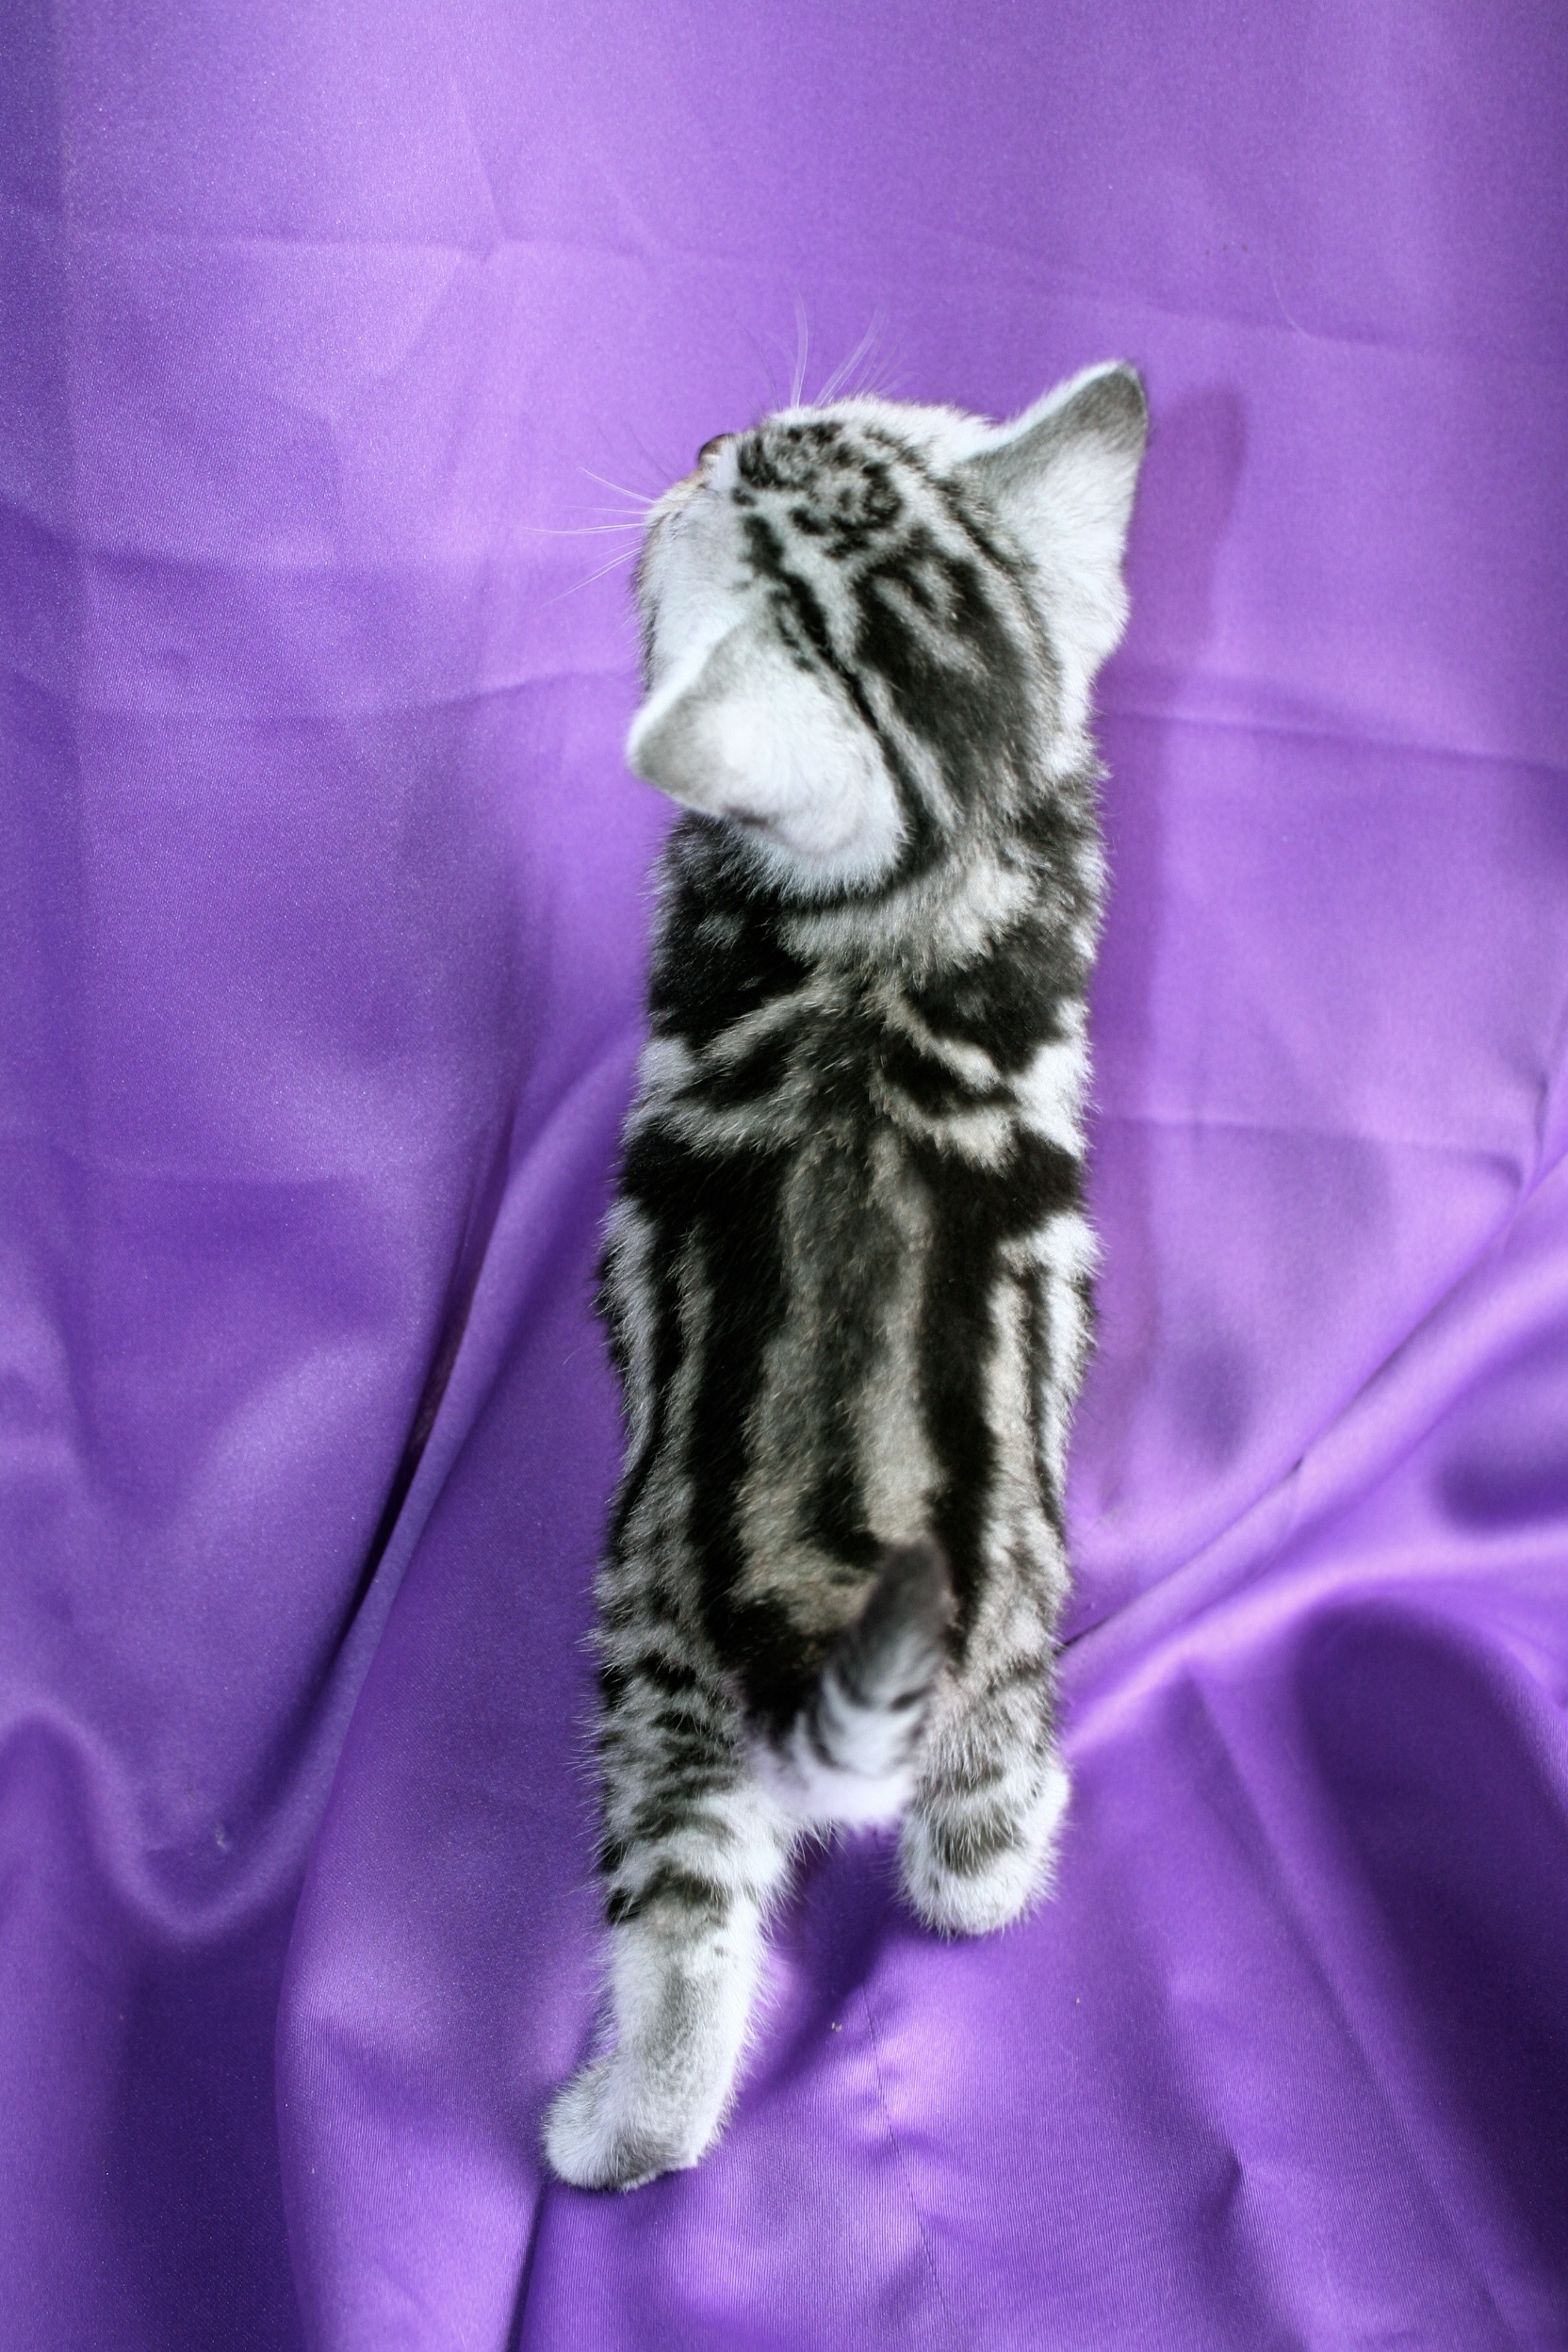 Image of American Shorthair silver tabby kitten top view showing dorsal stripes